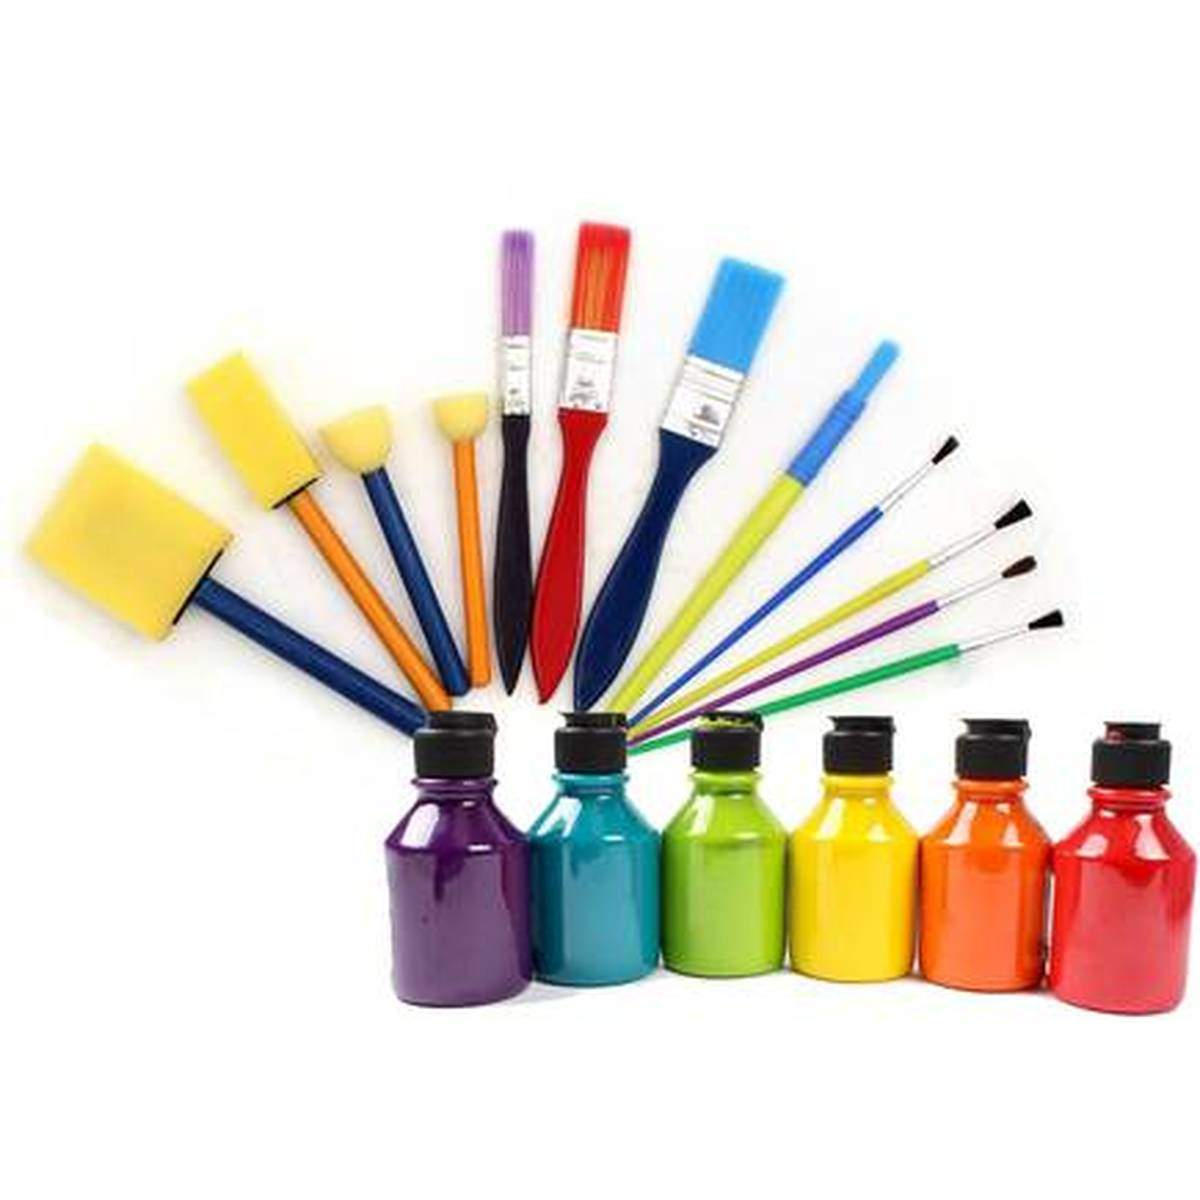 - Kids Brushes And Ready Mix Paint Bundle, Hobbycraft, £5